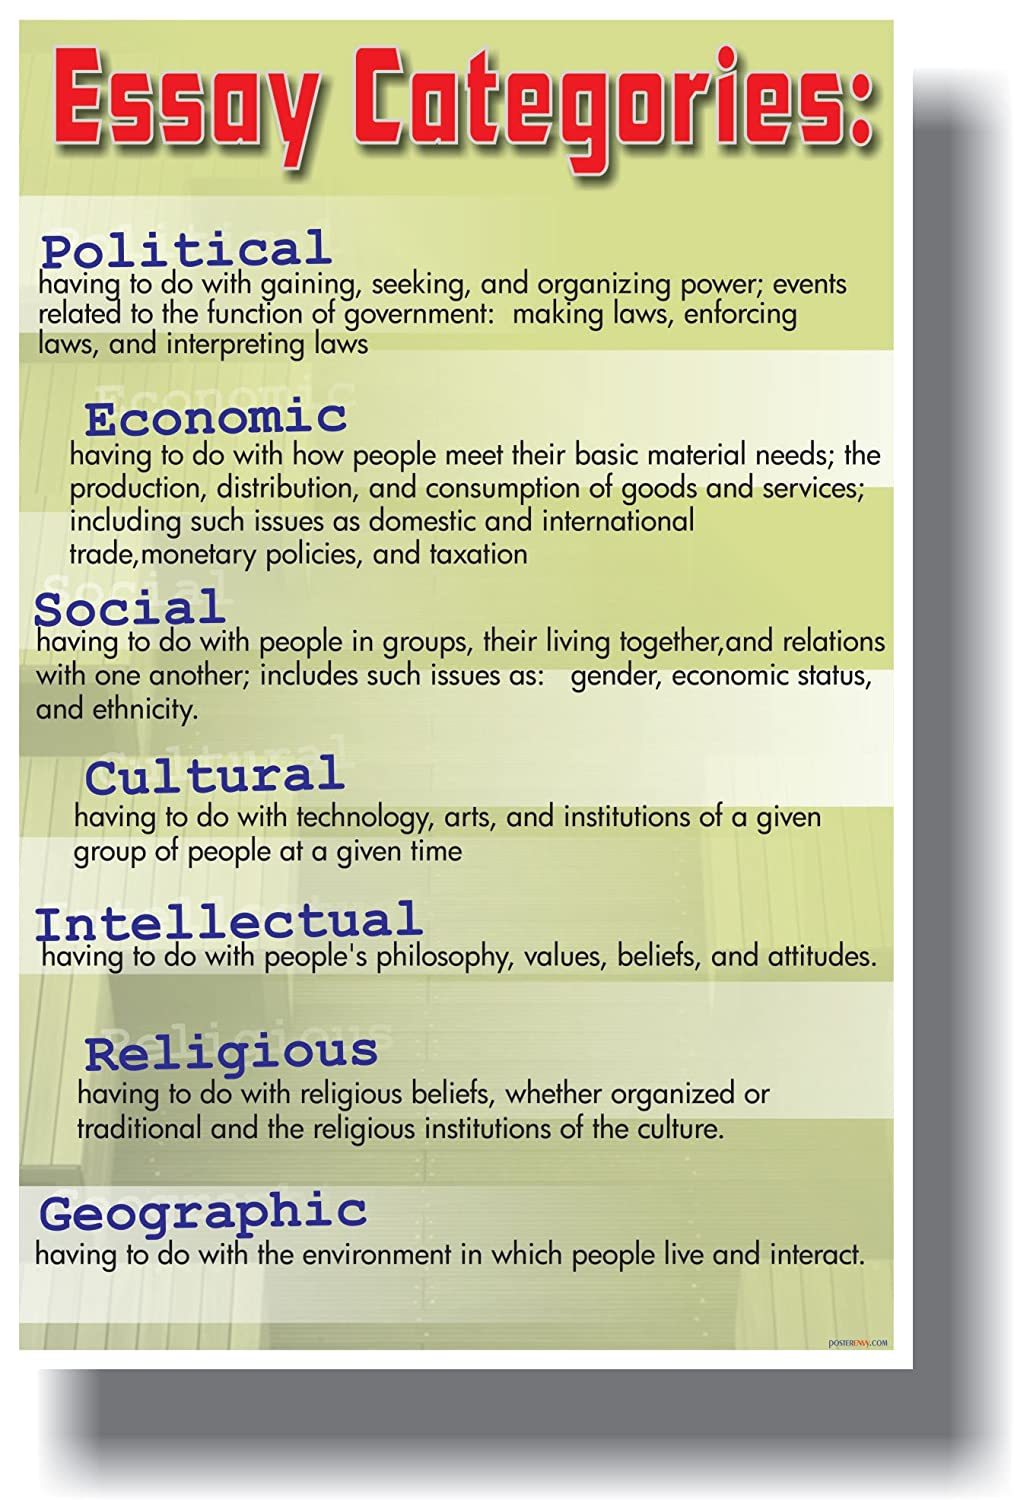 personal governing values essay A list of over 200 personal values however, it is useful to scan a core values list to prime yourself before the exercises and it's beneficial to review a list of core values after you brainstorm your list to determine if you missed something important.